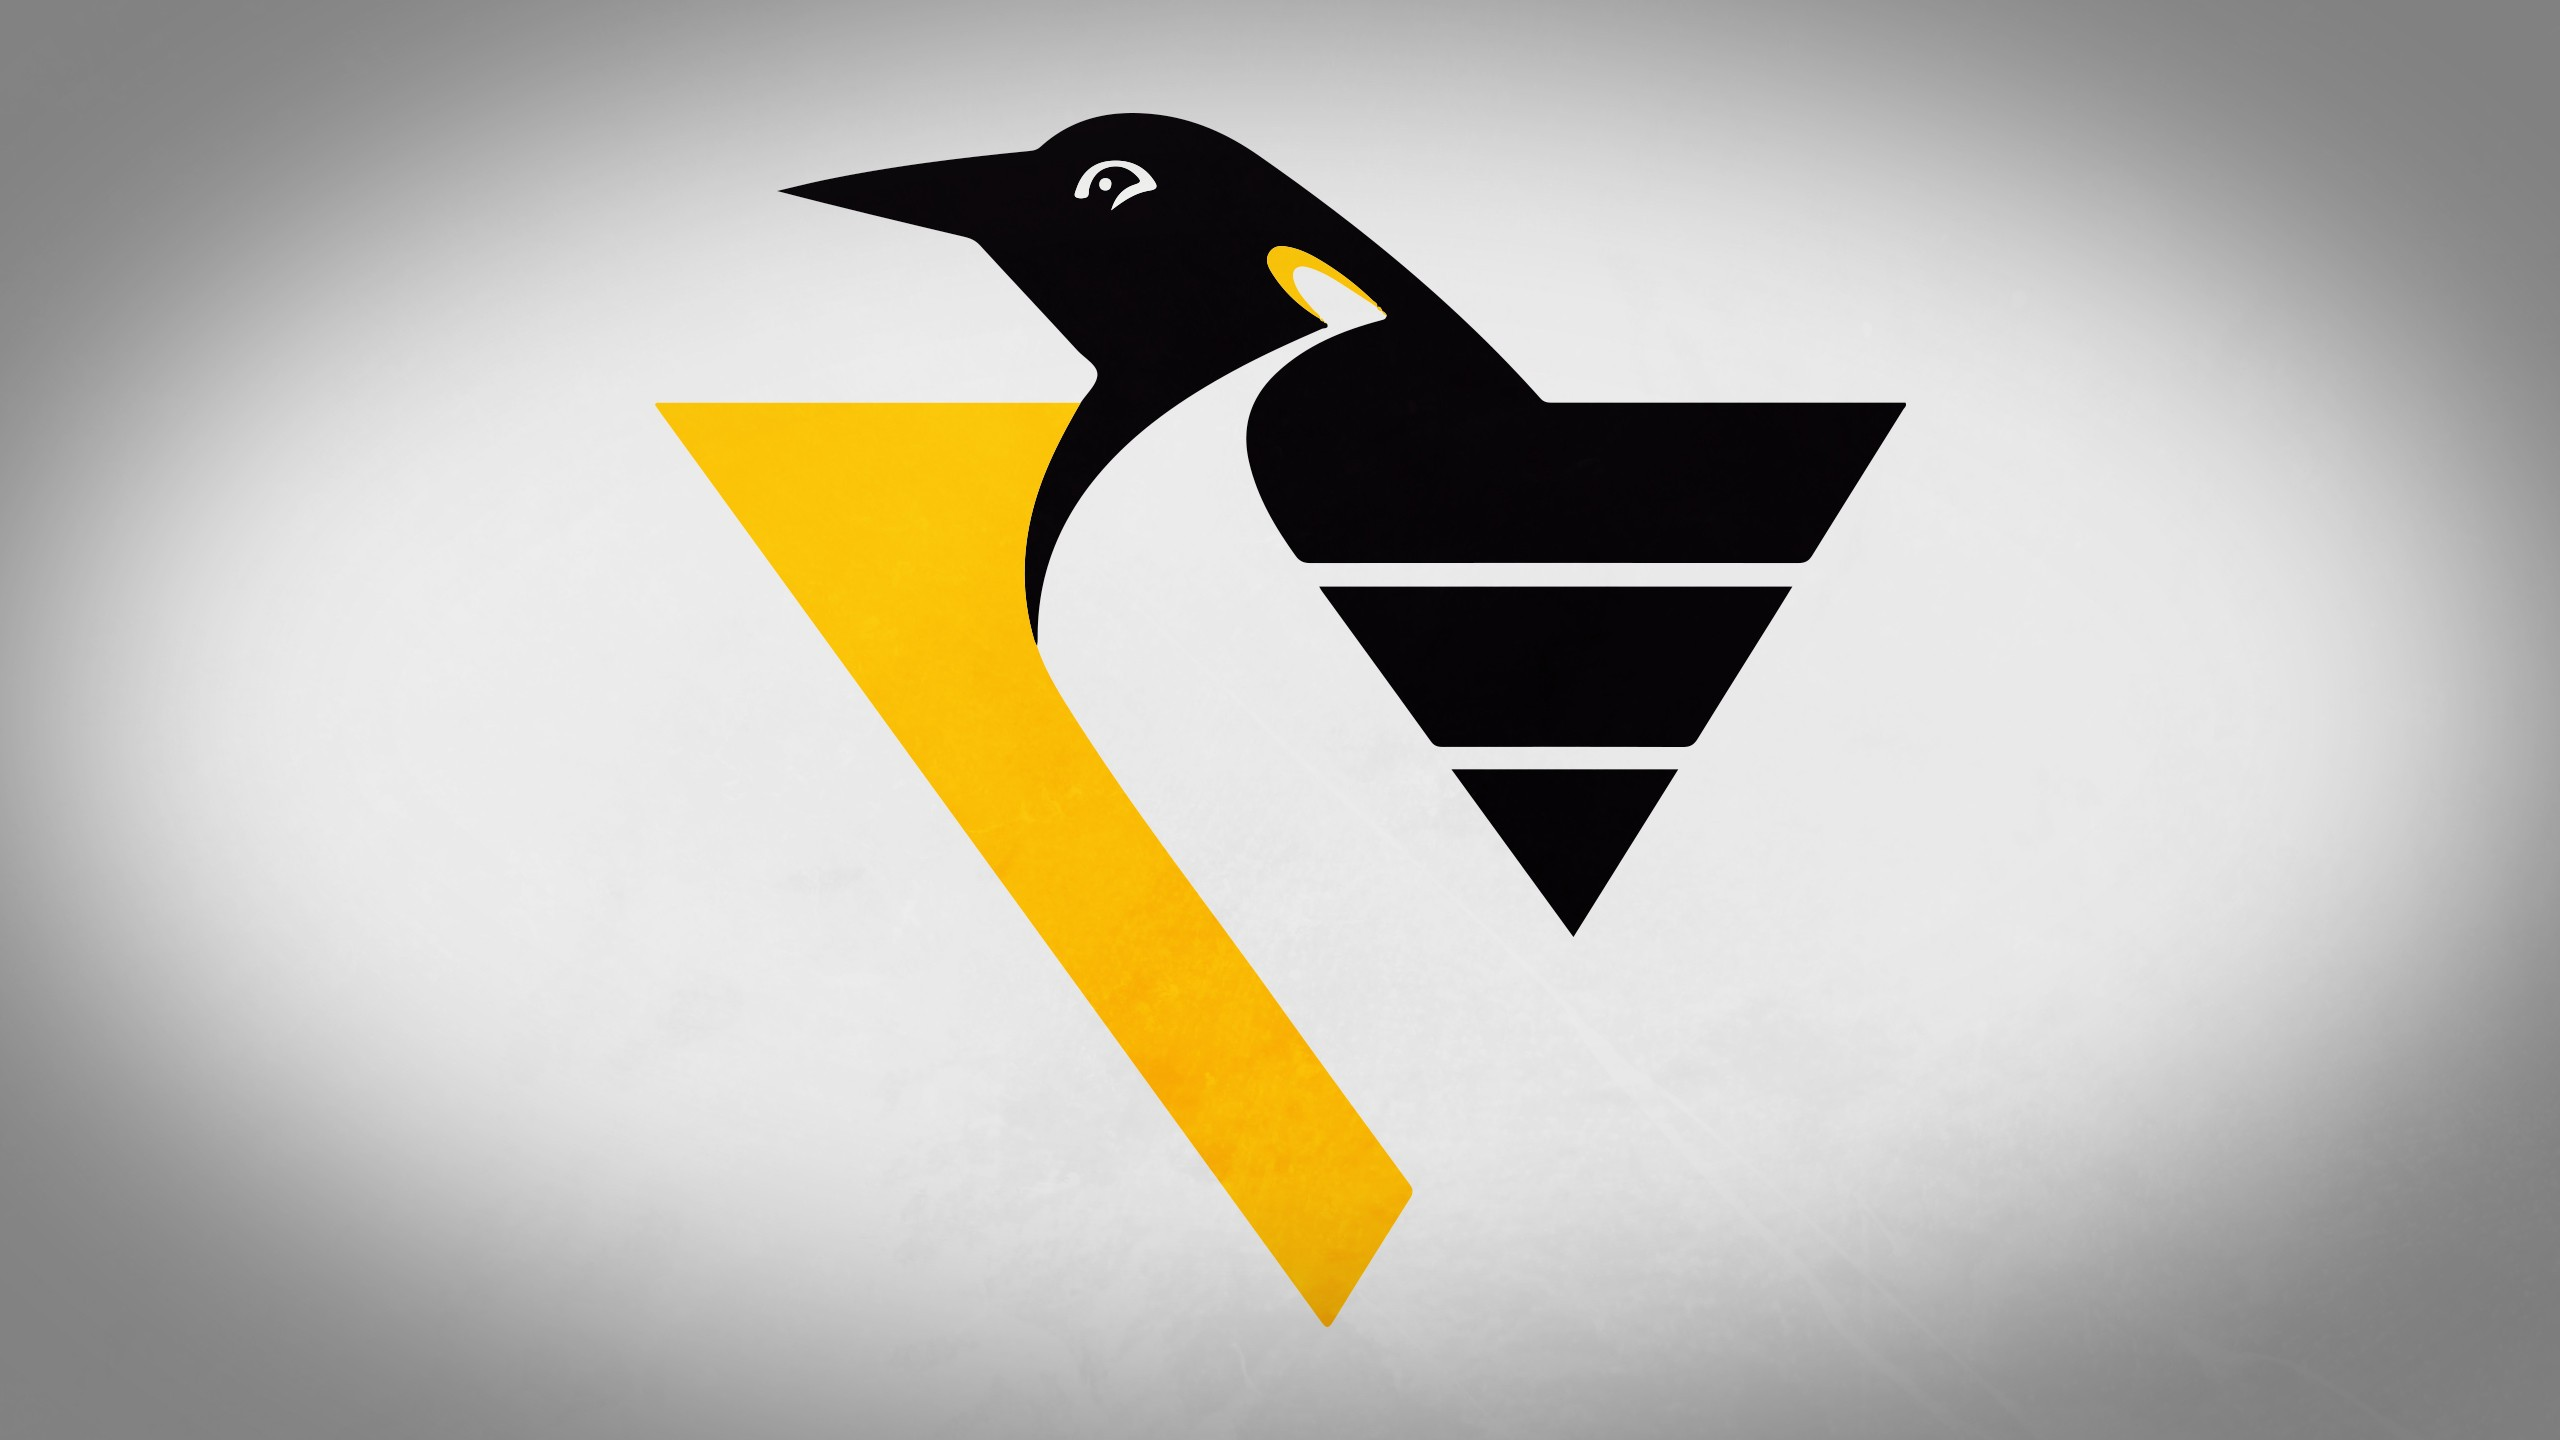 Pittsburgh Penguins HD Wallpaper | Background Image | 2560x1440 | ID:415109 - Wallpaper Abyss